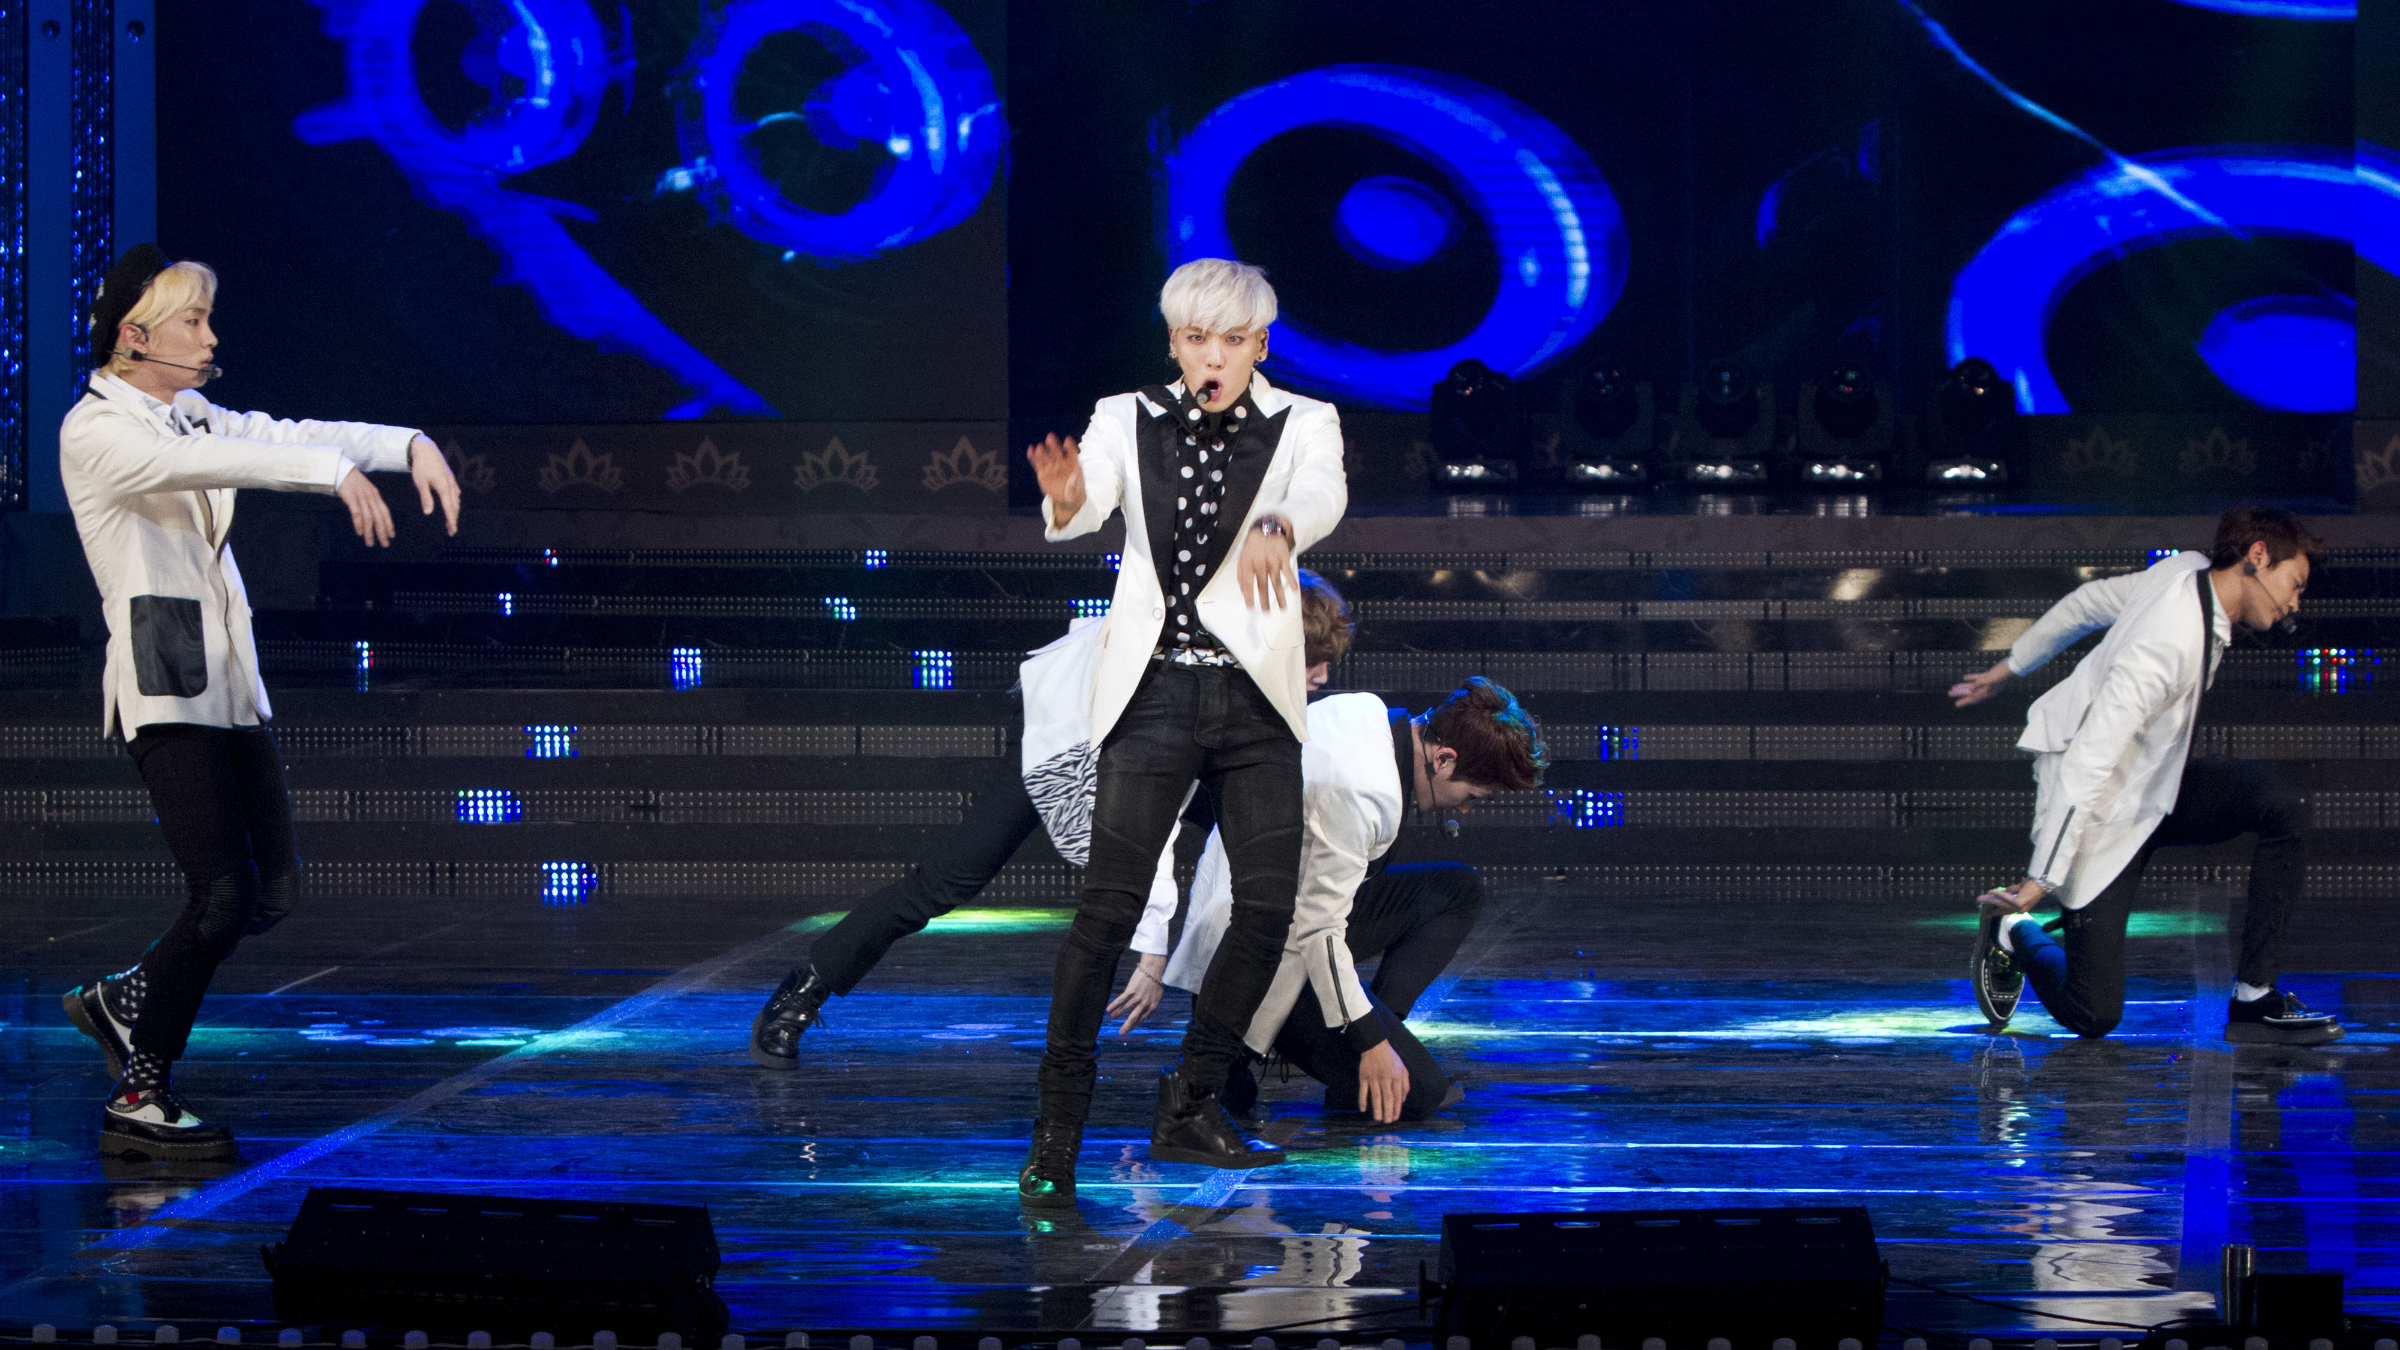 Seoul, South Korea - South korean K-Pop boys group SHINee, performs onstage during the 2013 Miss Korea Beauty Pageant at Sejong Culture Center in Seoul, South Korea on June 4, 2013. (Photo by Lee Young-Ho/Sipa USA) (Sipa via AP Images